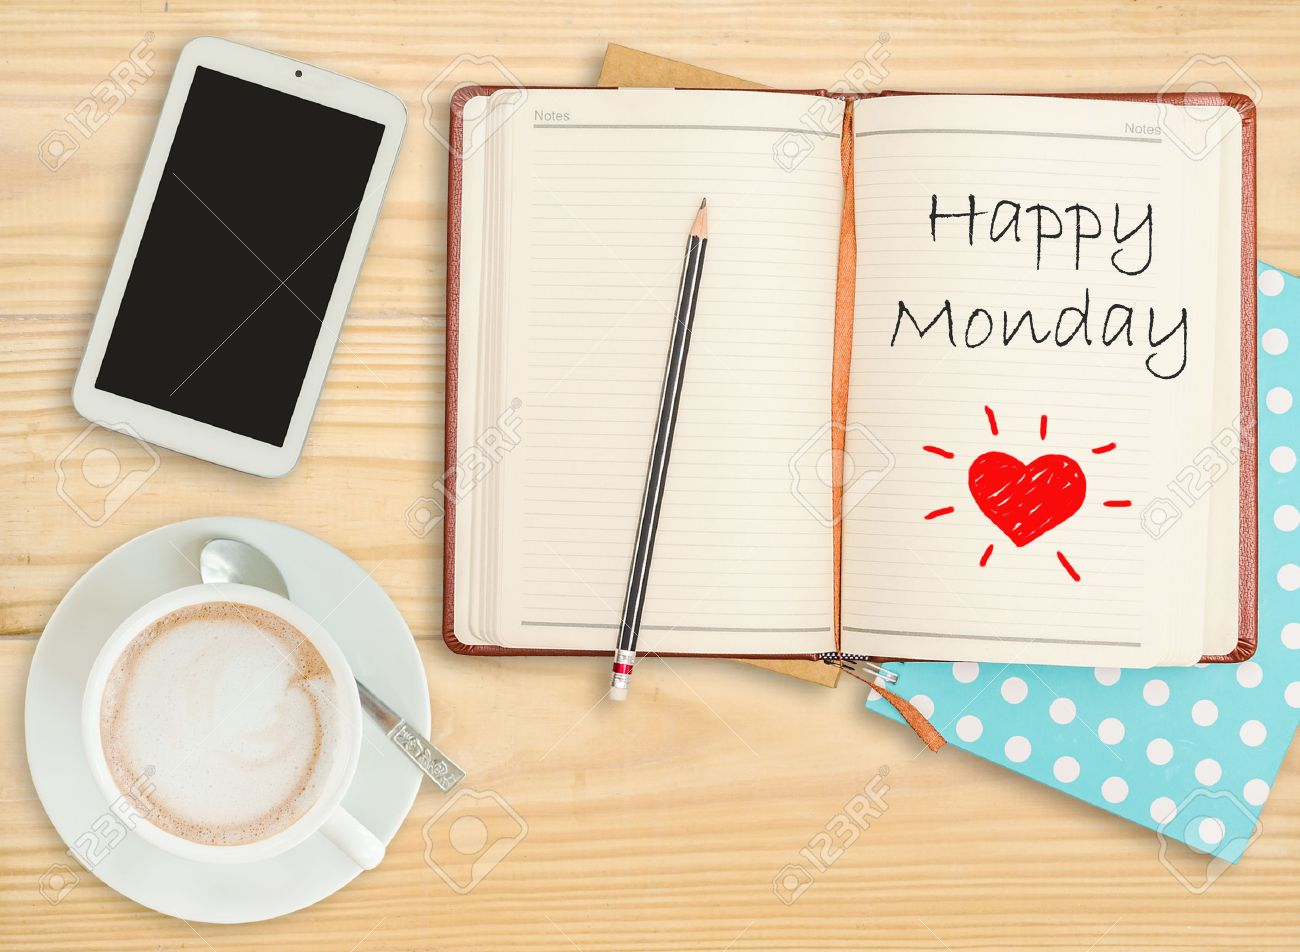 Happy Monday on notebook with pencil, smart phone and coffee cup Stock Photo - 31794483